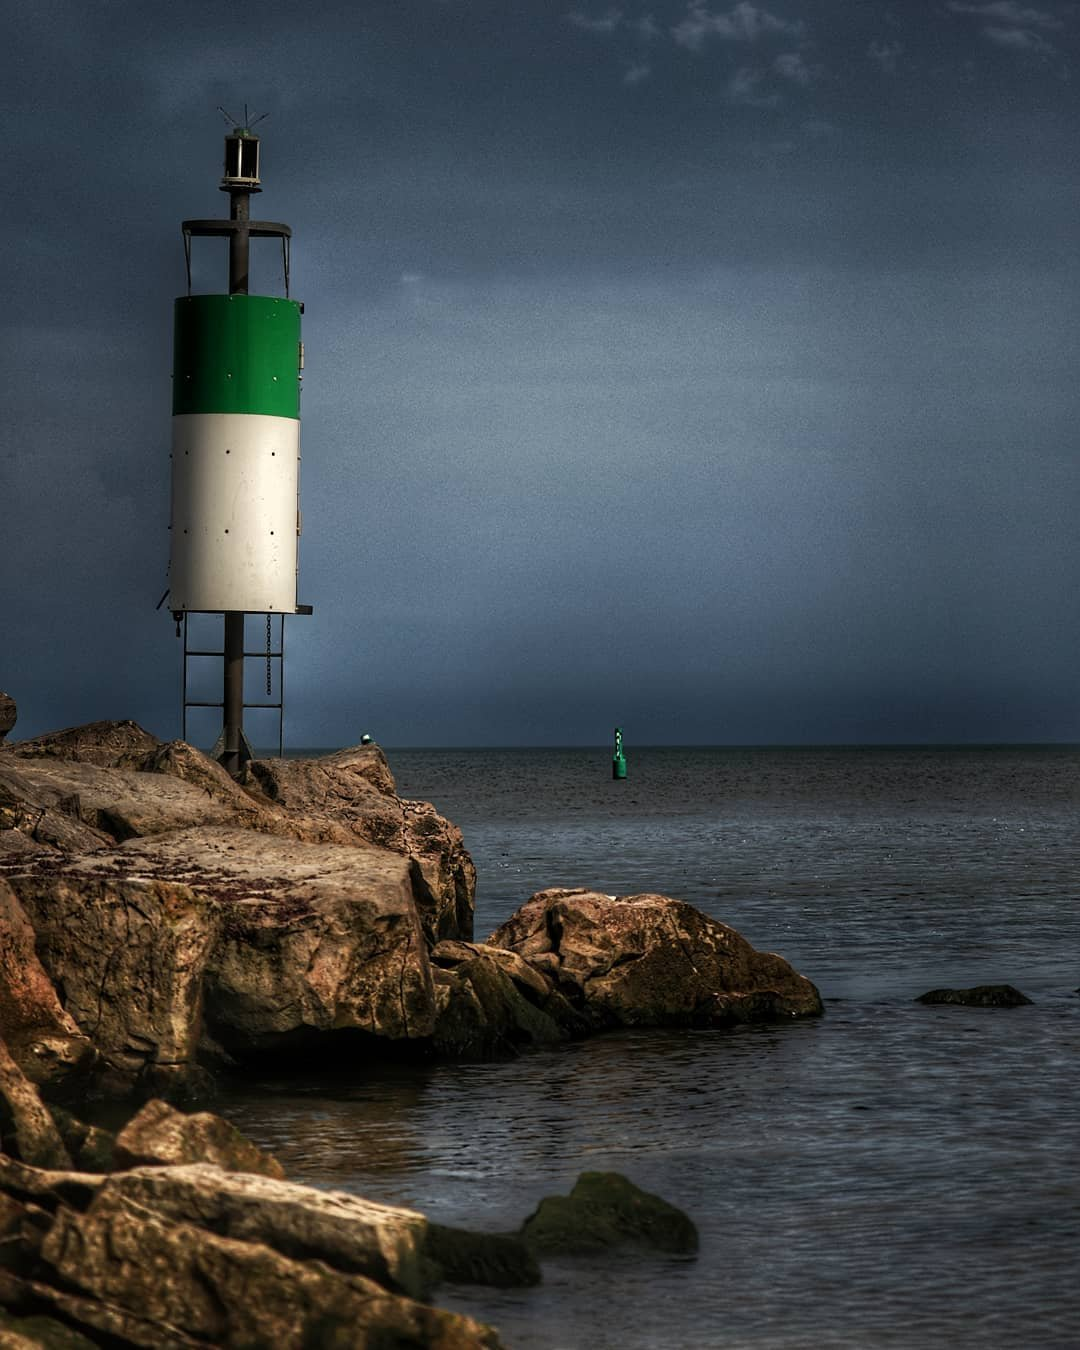 A dark sky over the lake with a rocky coastline featuring a warning light system for boats